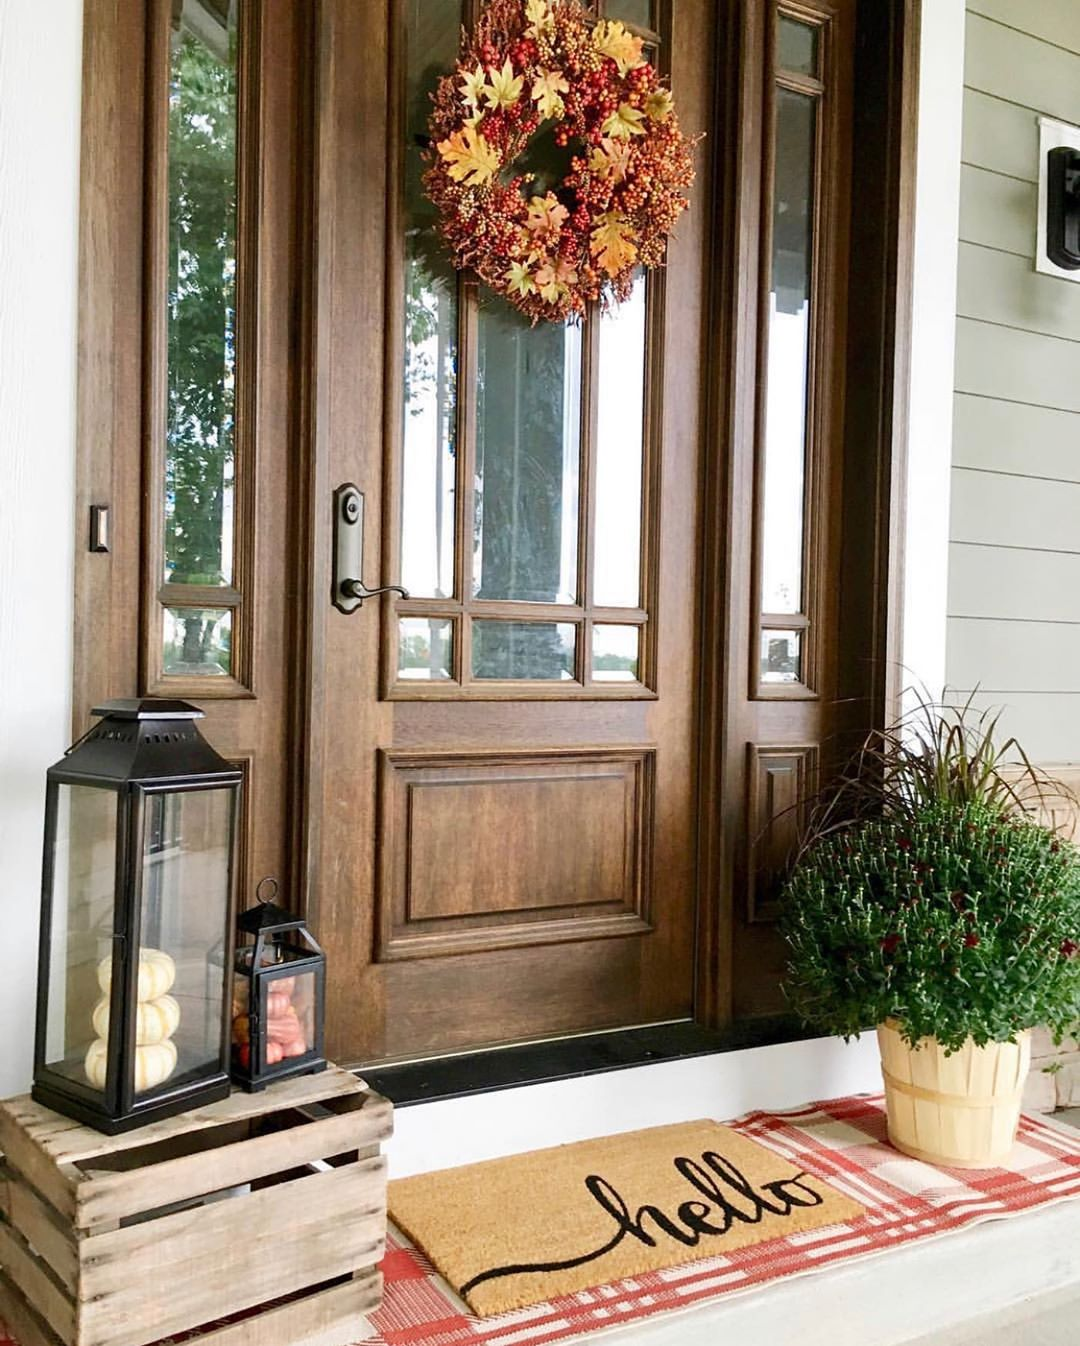 Wood stained front door with glass and matching sidelights surrounded by seasonal décor